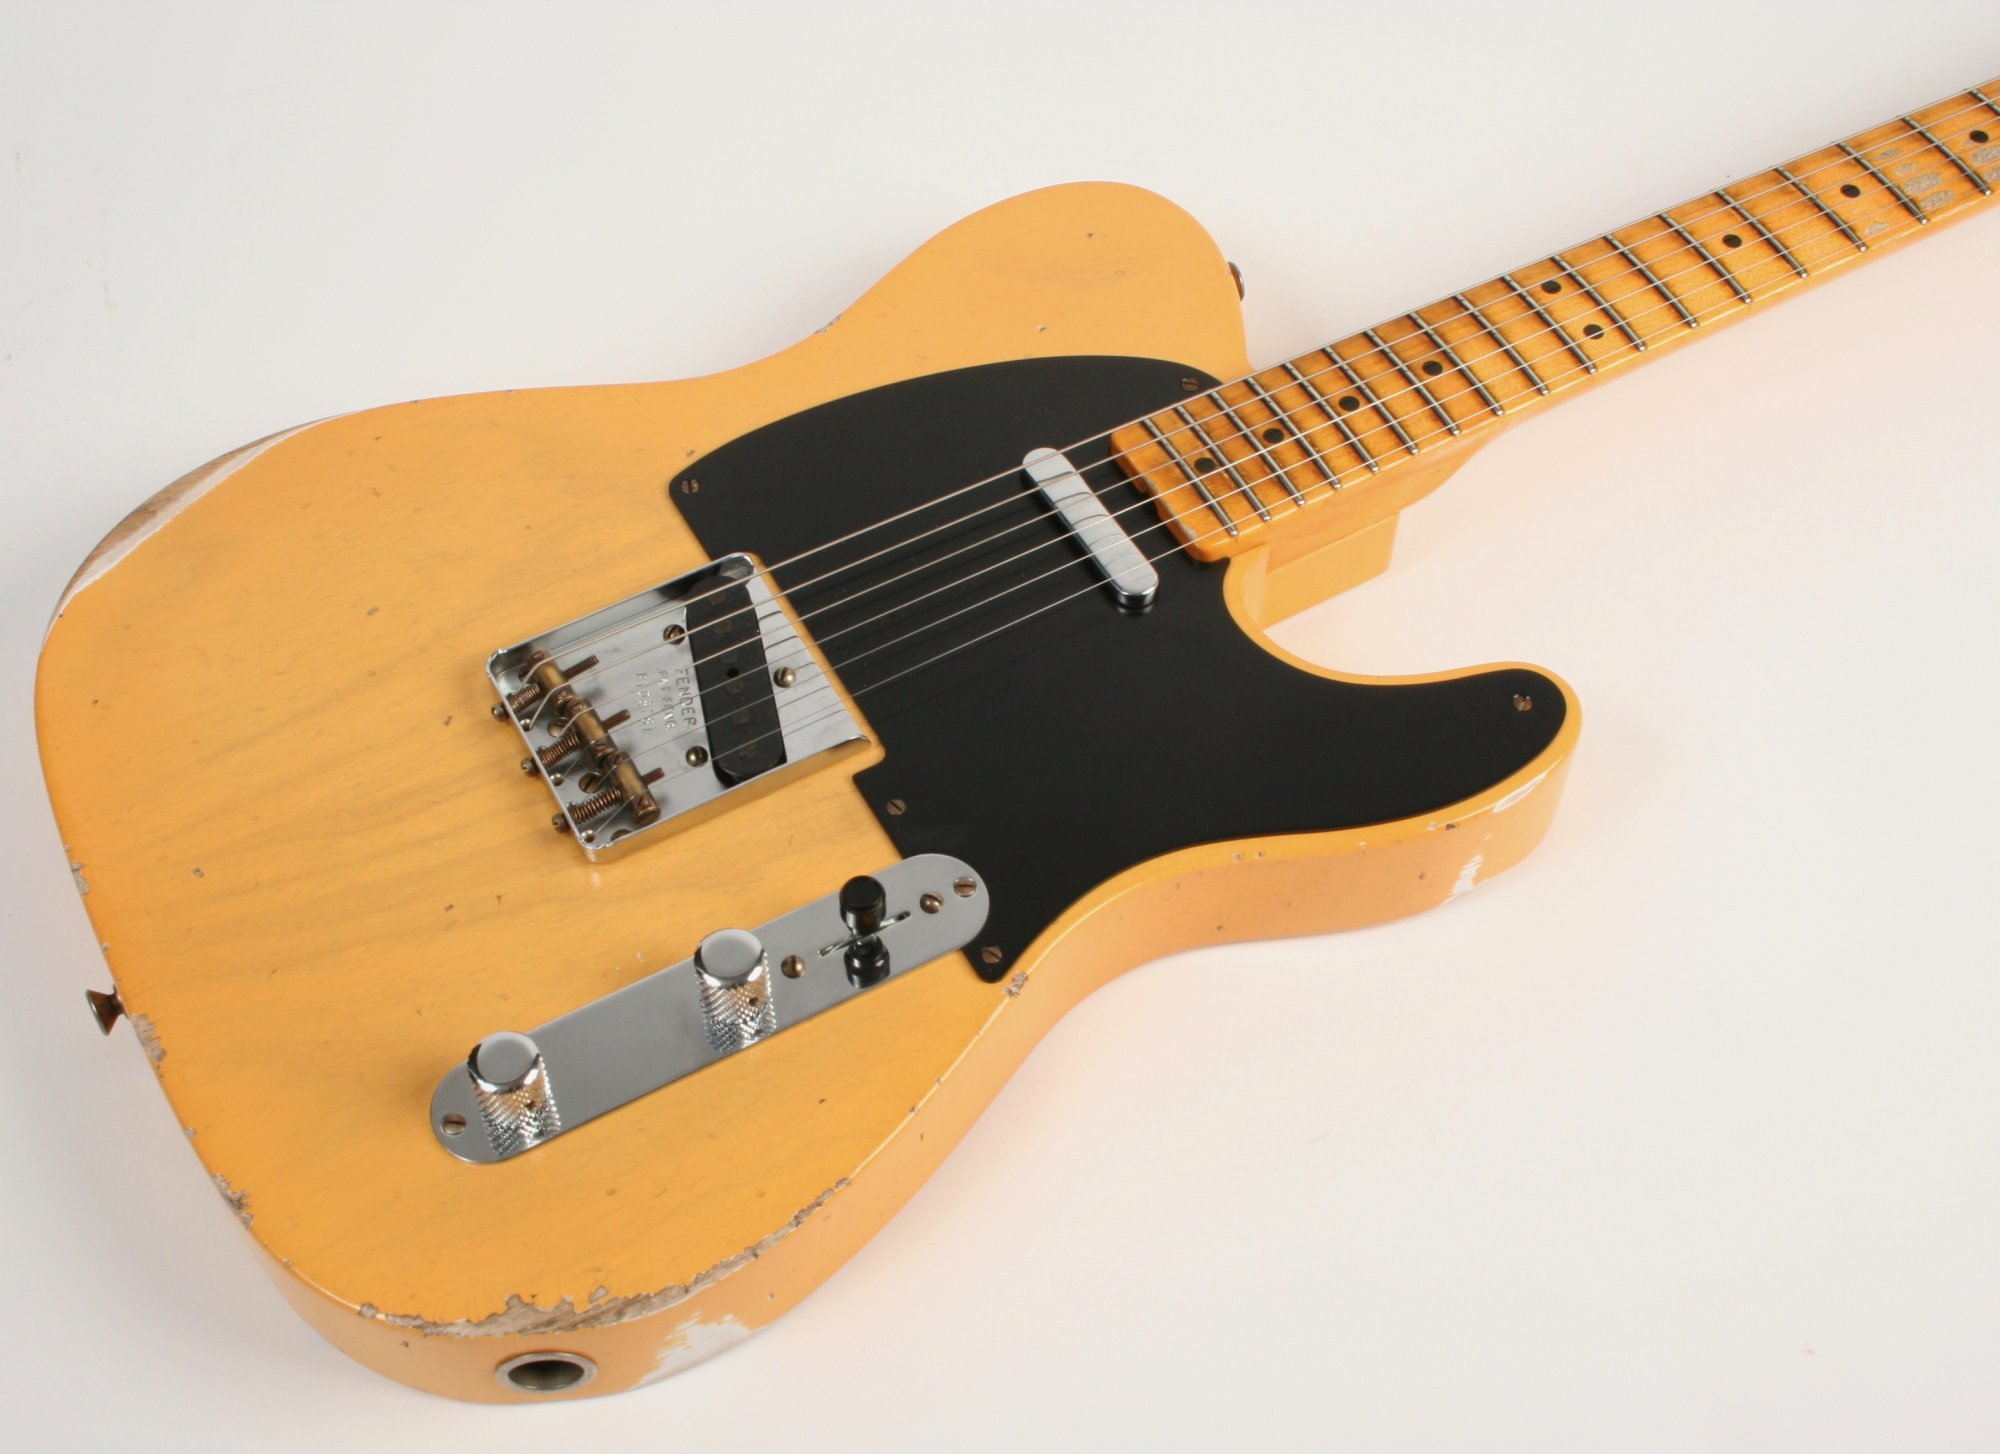 Fender Custom Shop Limited Edition 70th Anniversary Broadcaster Relic Aged Nocaster Blonde